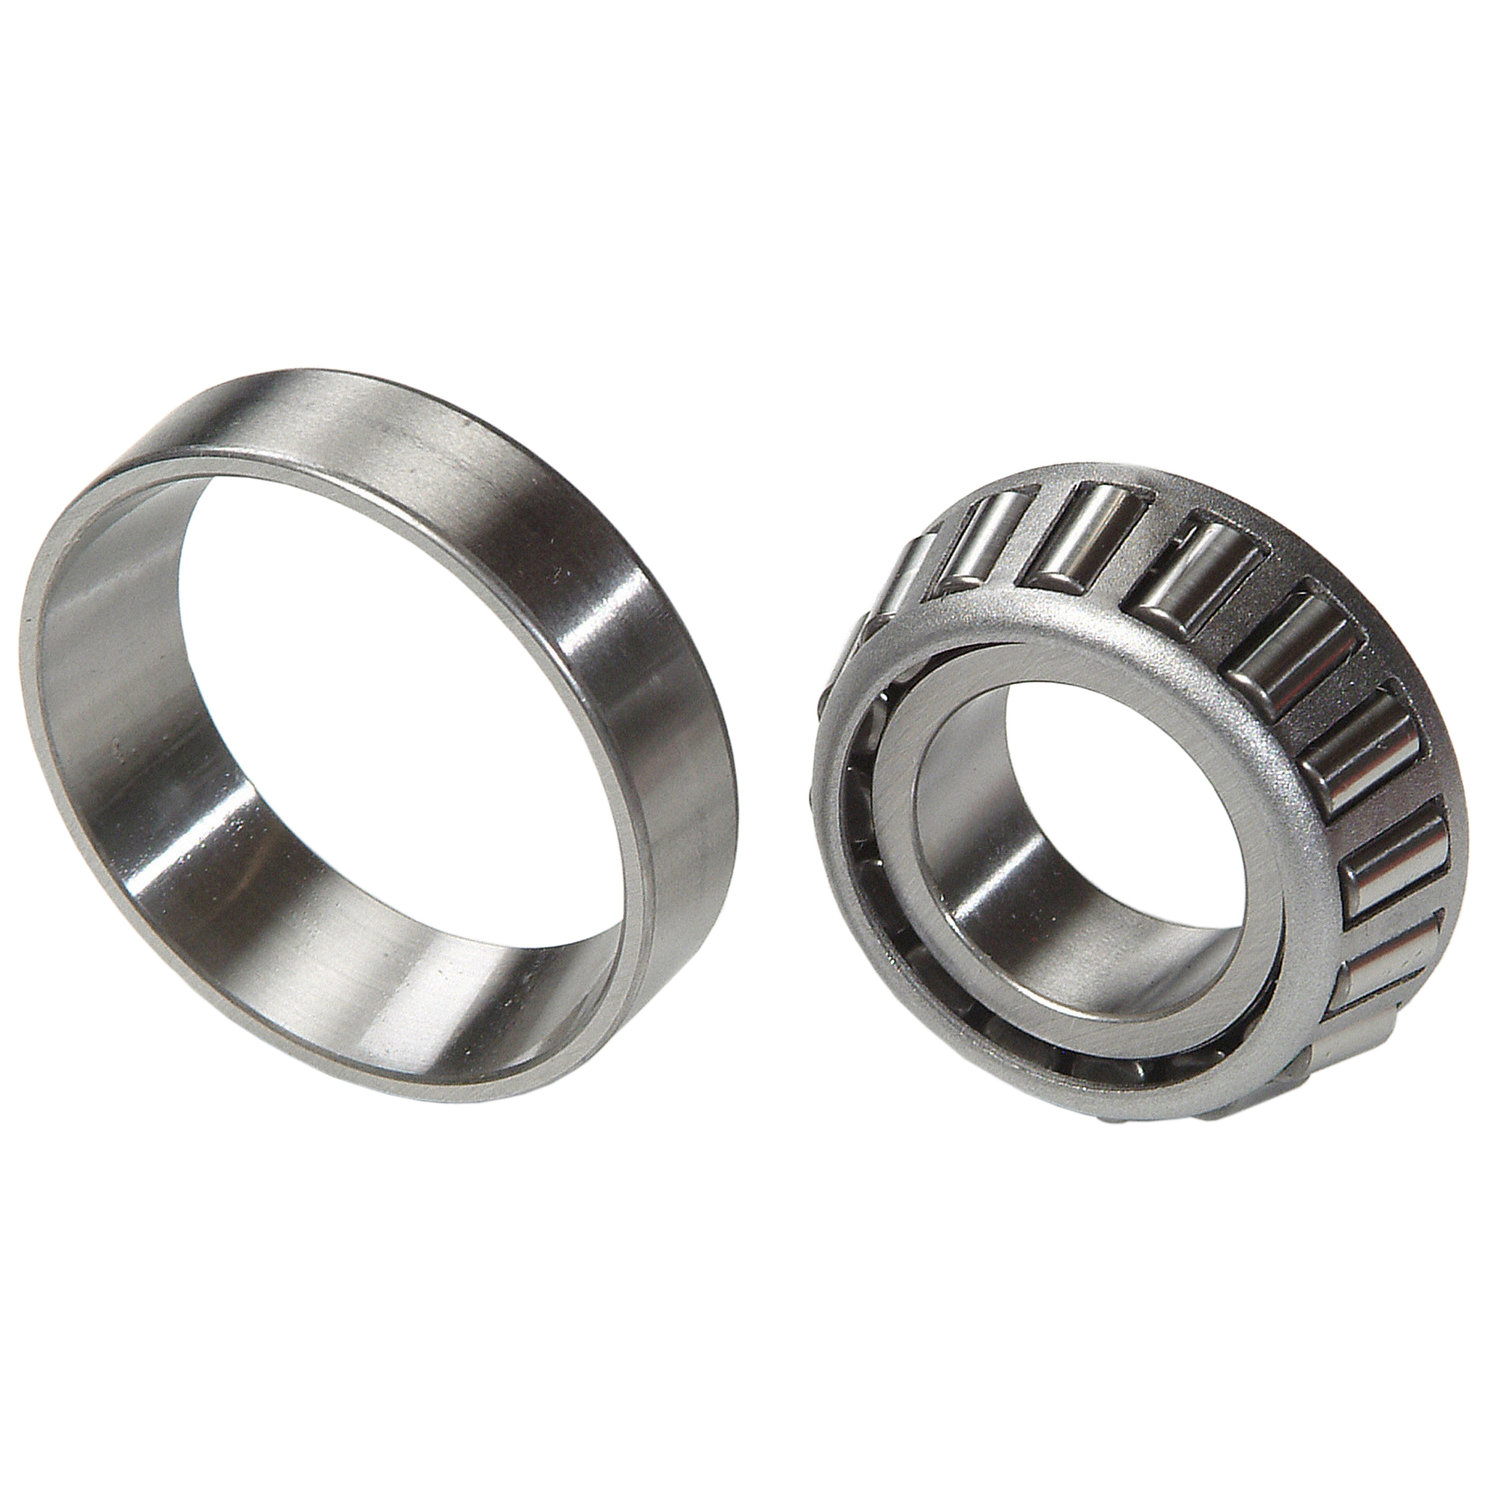 Automatic Transmission Transfer Shaft Bearing